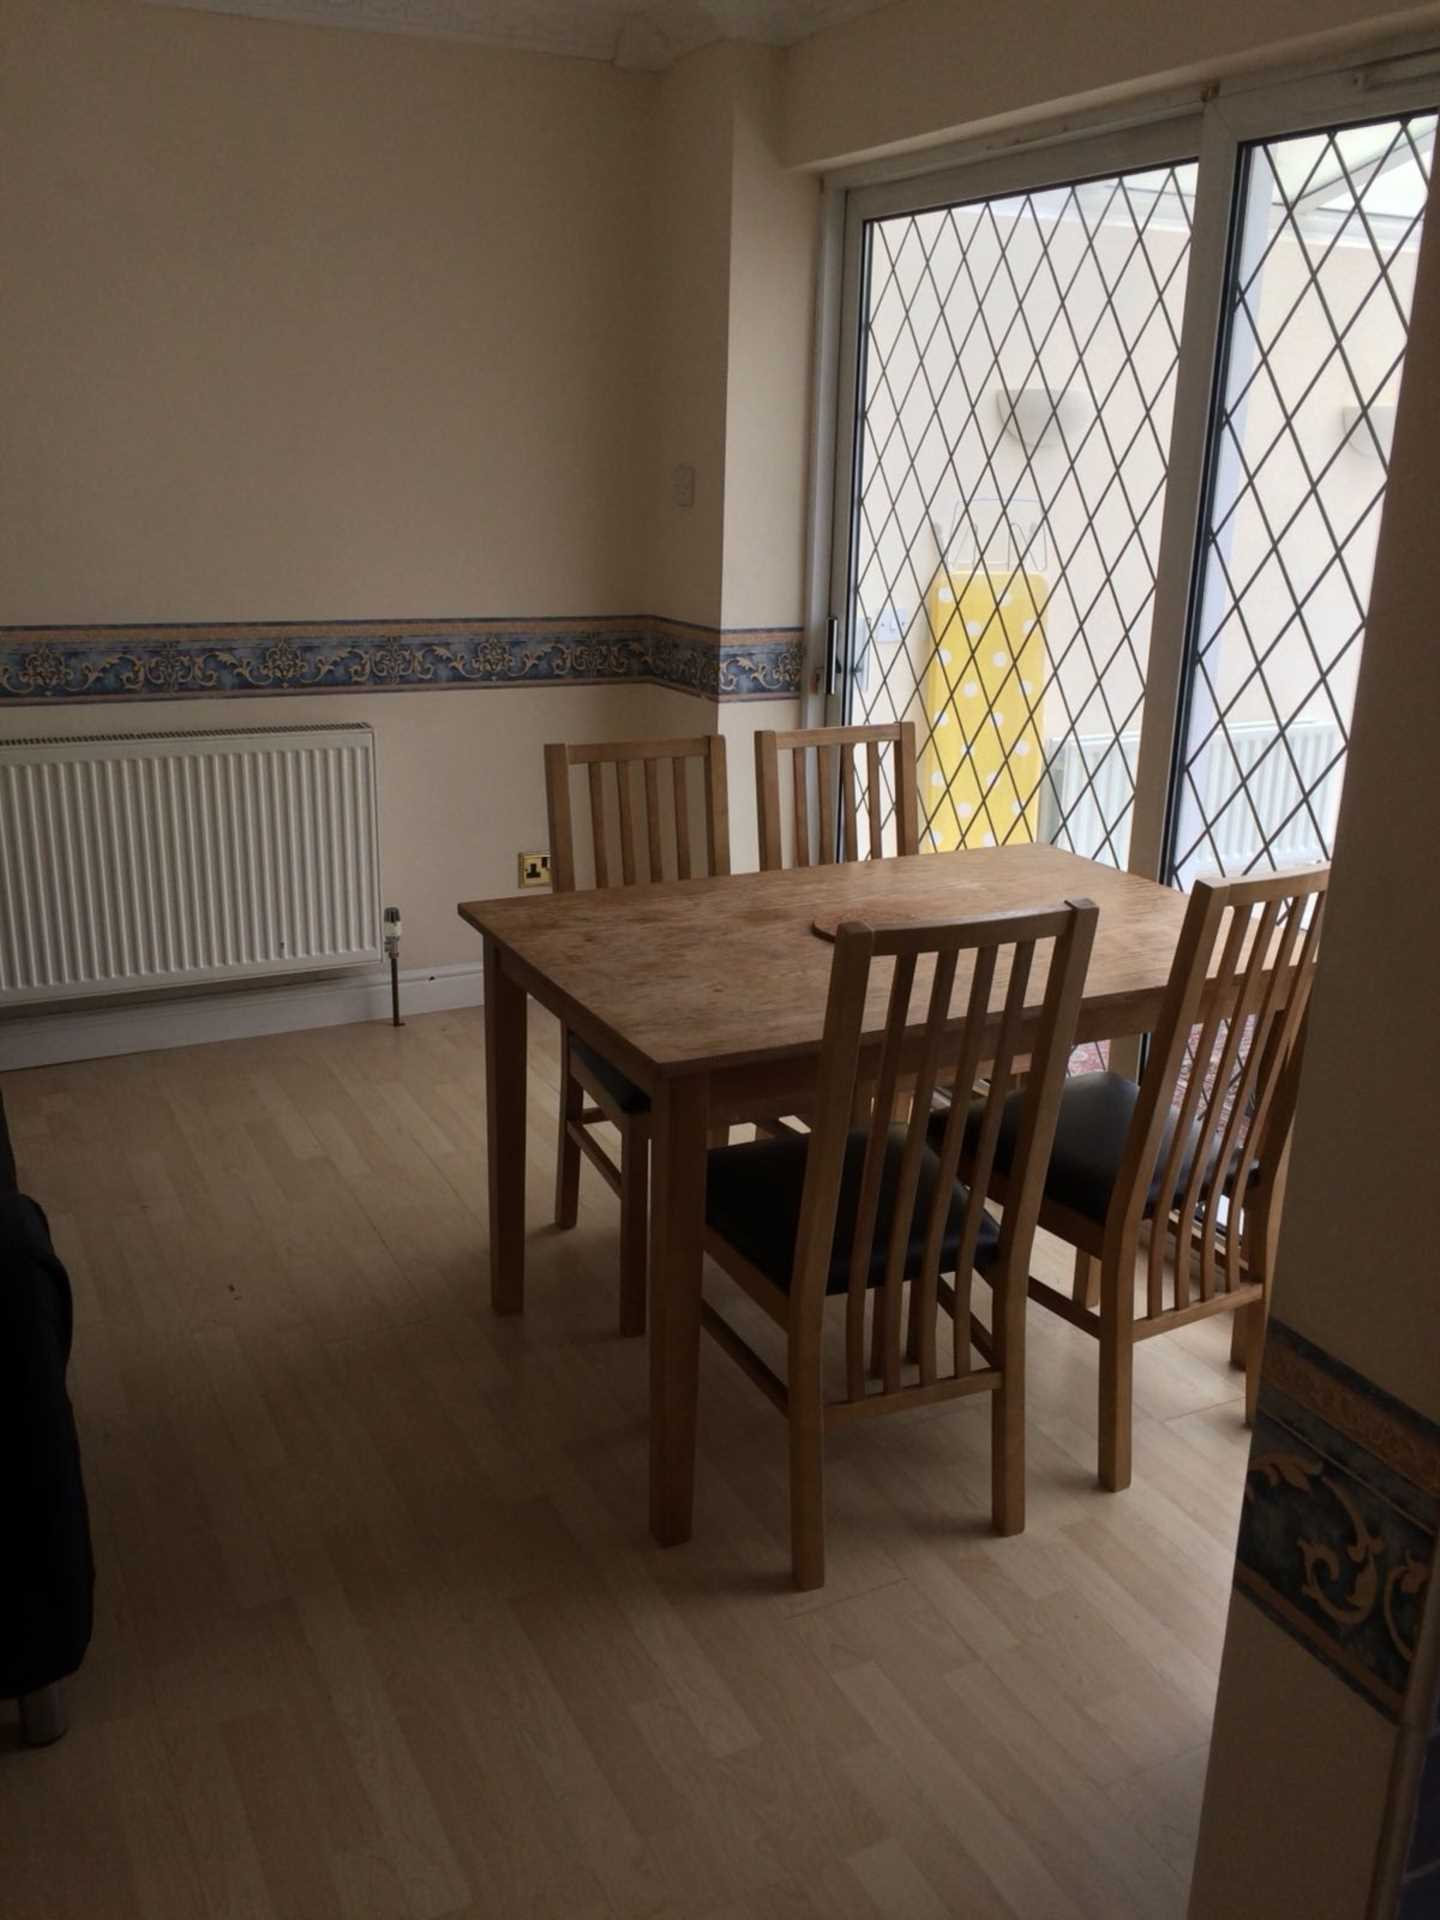 Room 4, Queensland Avenue - 5 bedroom 2 bathroom student home fully furnished, WIFI & bills included - NO FEES, Image 5